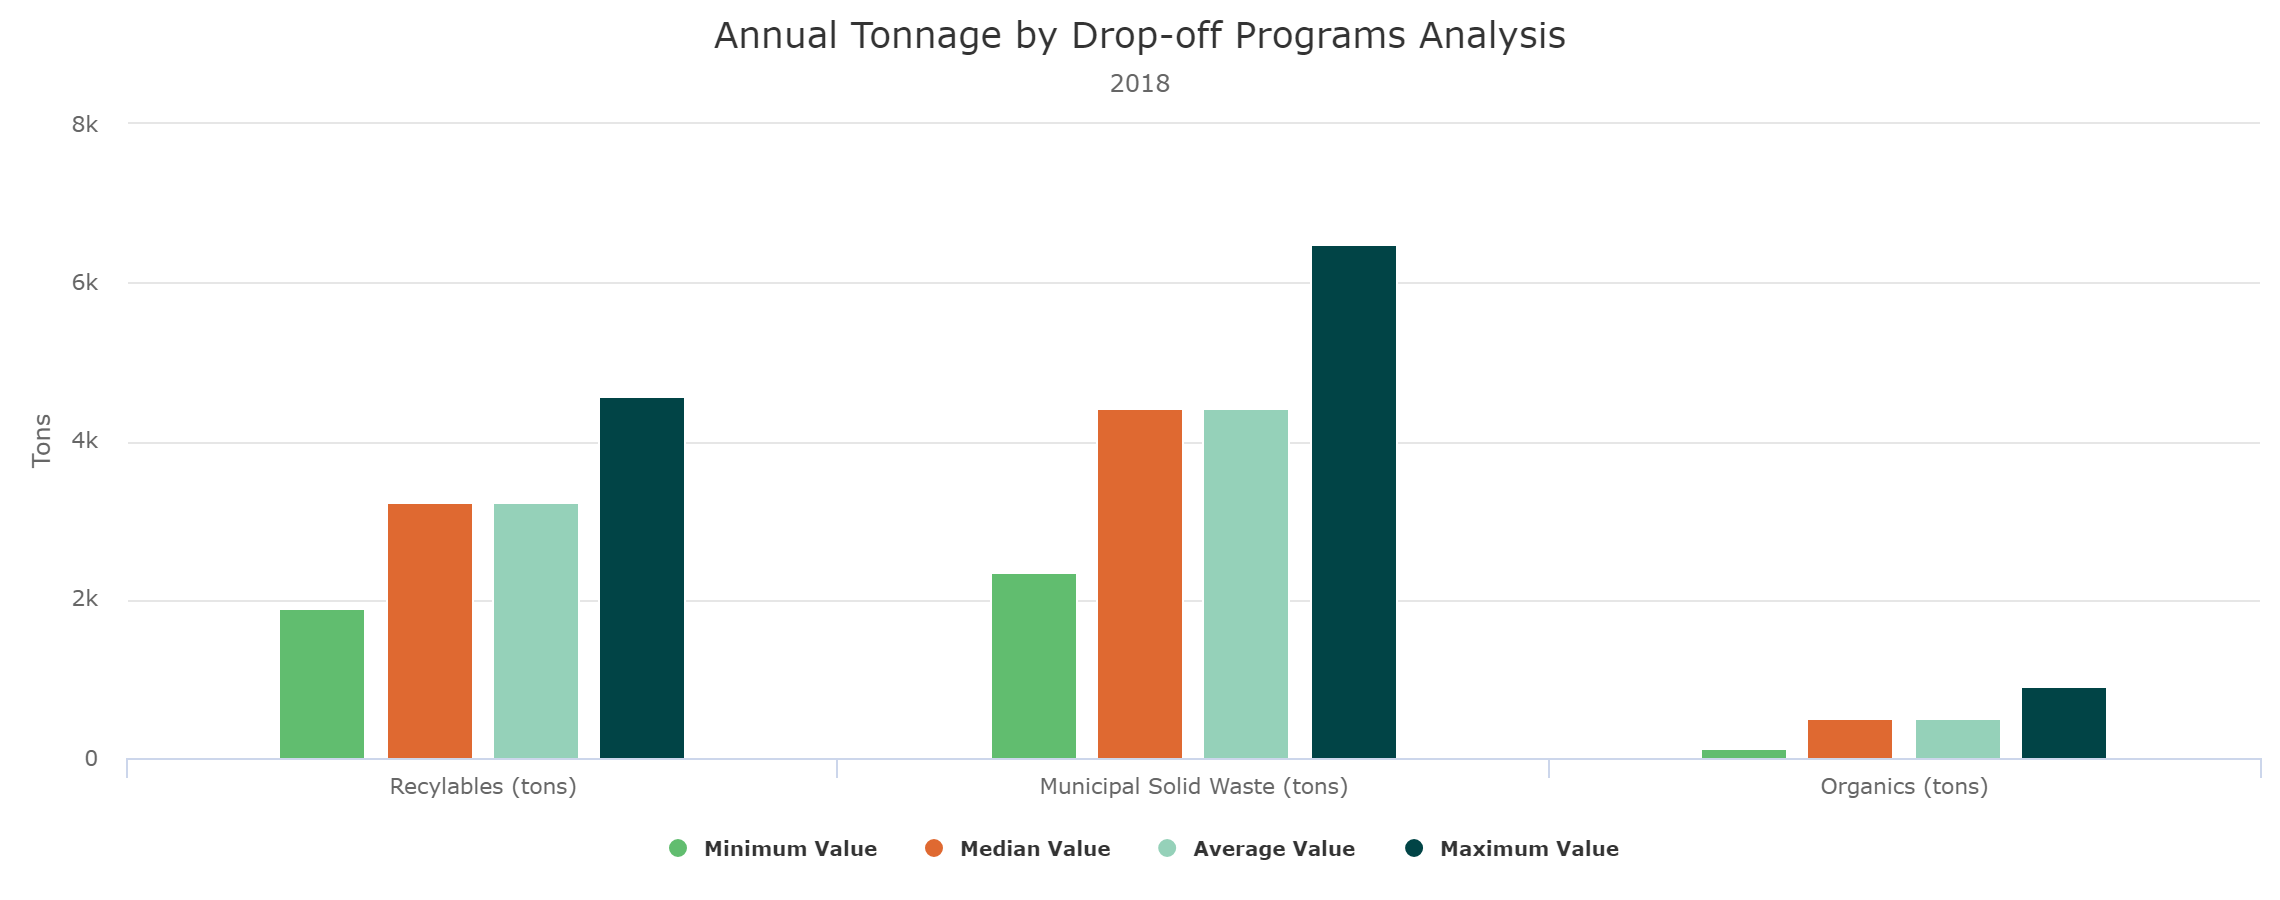 Drop-off Tonnage Analysis